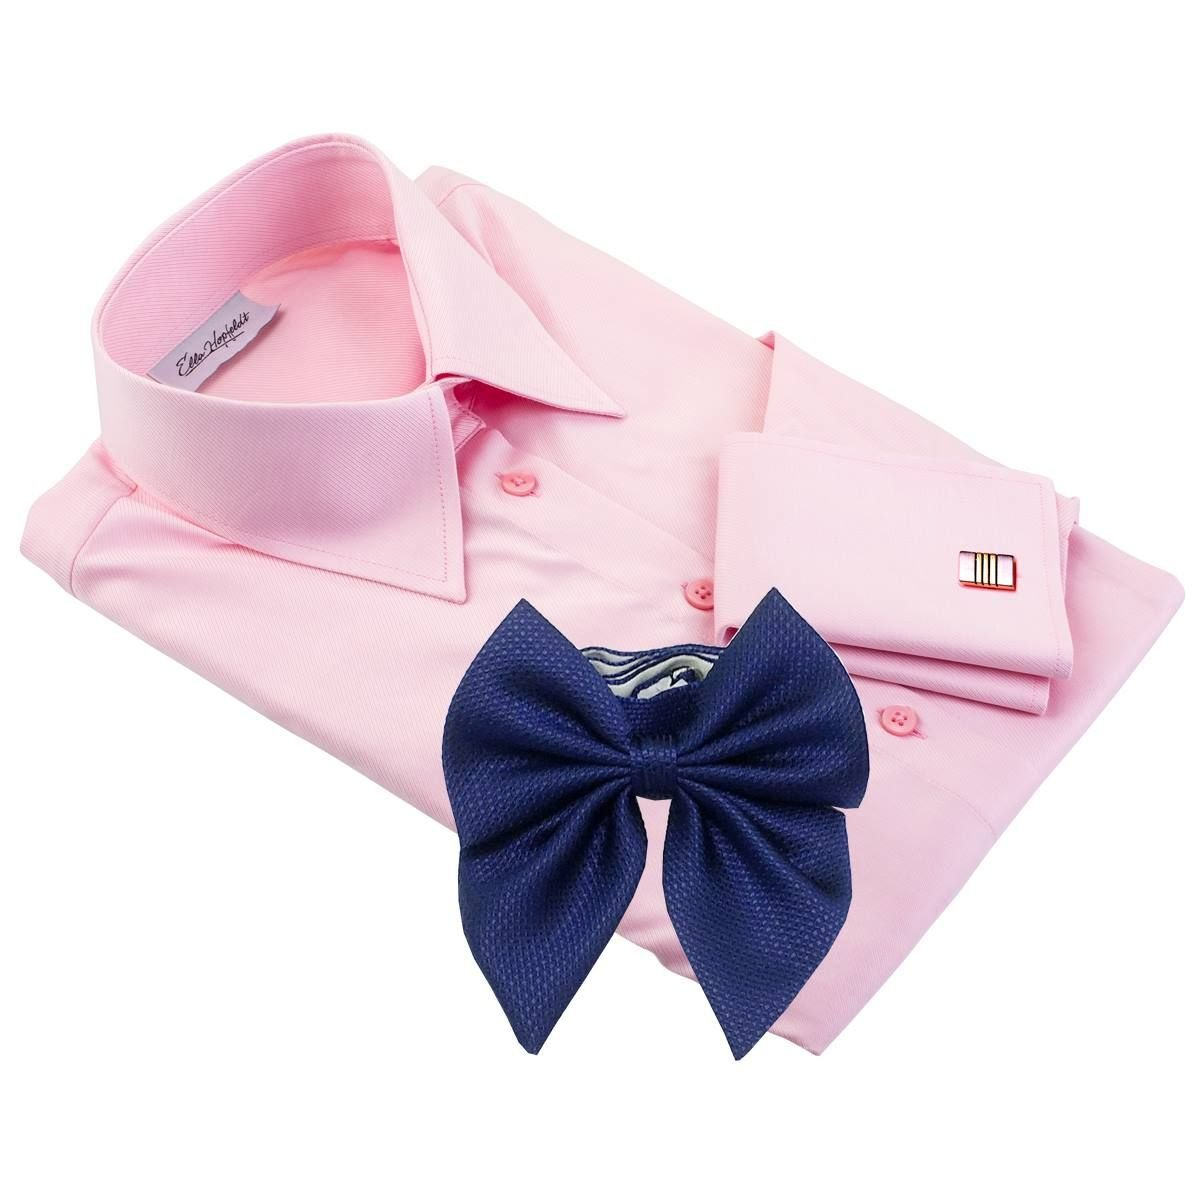 Venice Pink Dress Shirt With Bow Tie Ella Hopfeldt